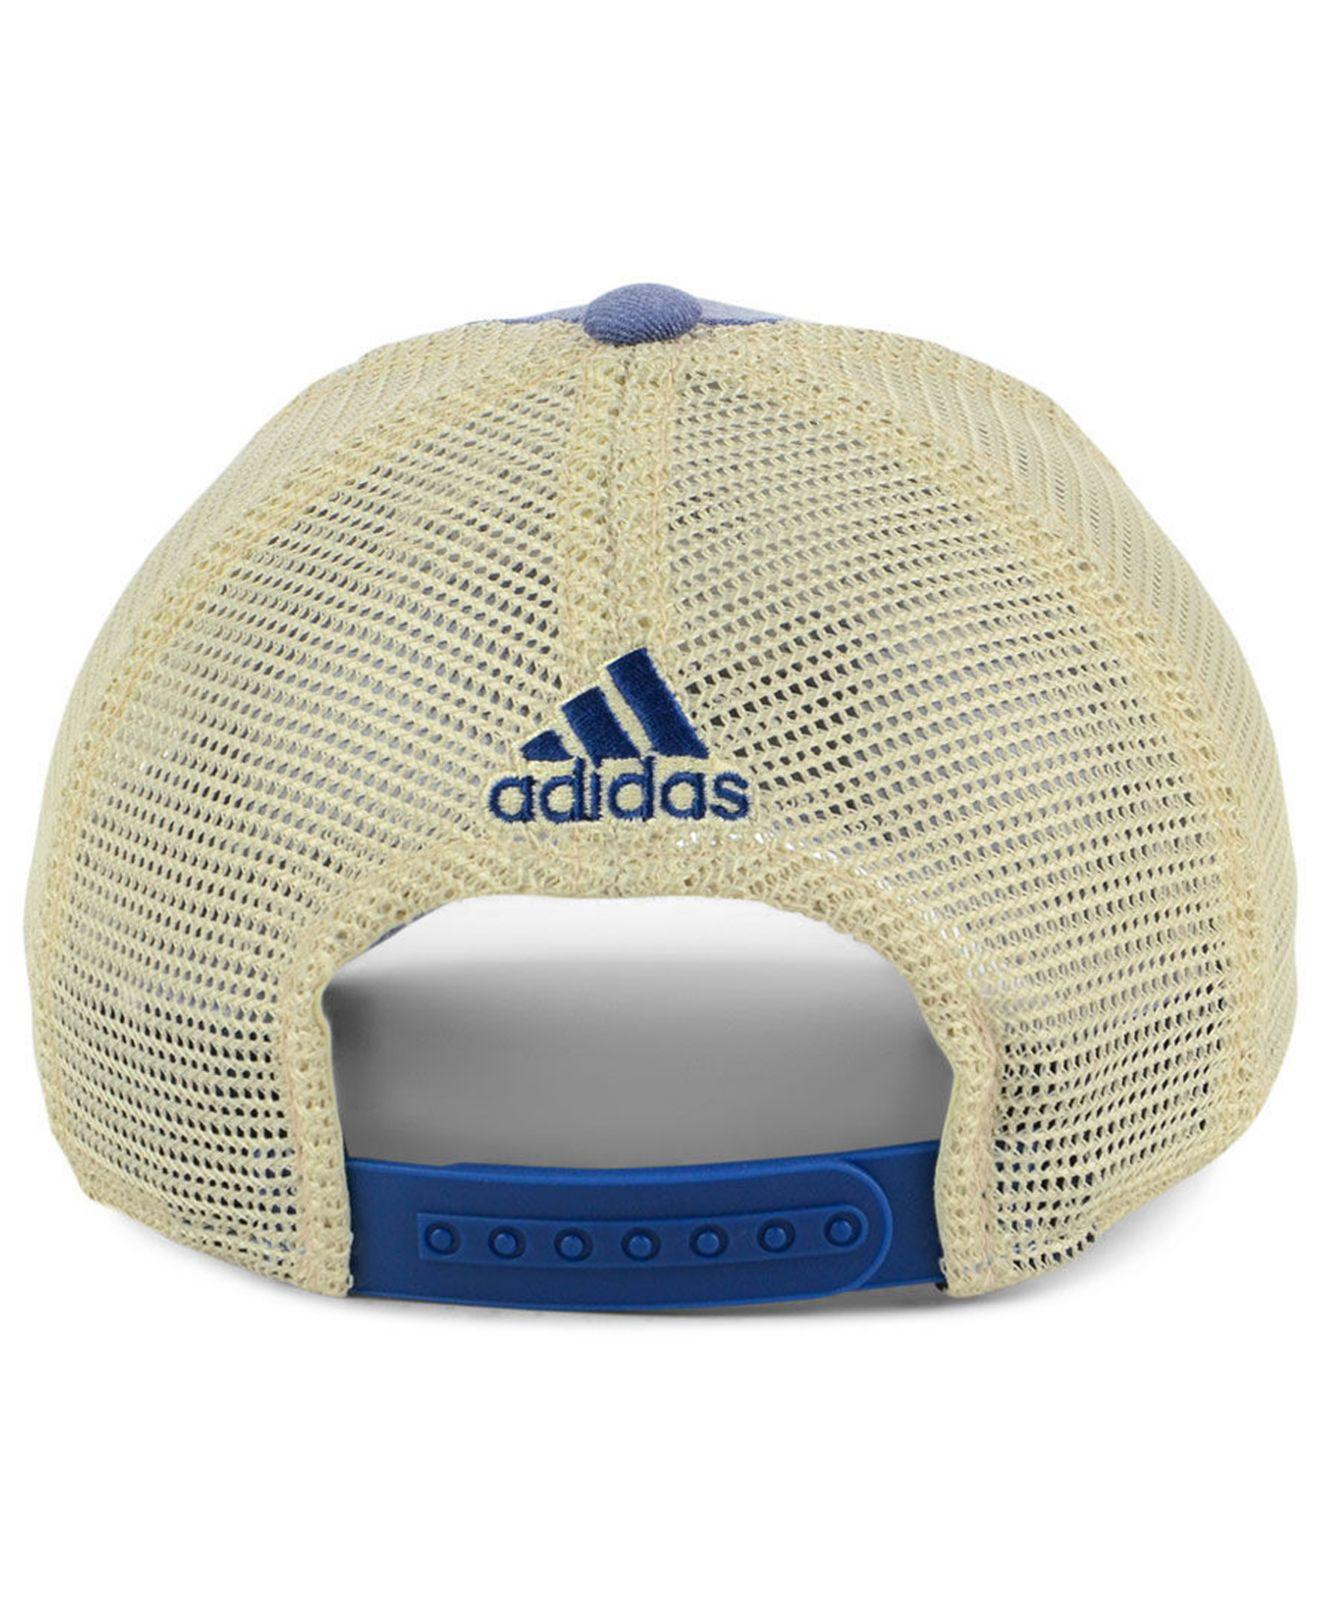 best service 1f4b7 ace87 ... inexpensive adidas blue toronto maple leafs sun bleached slouch cap for men  lyst. view fullscreen